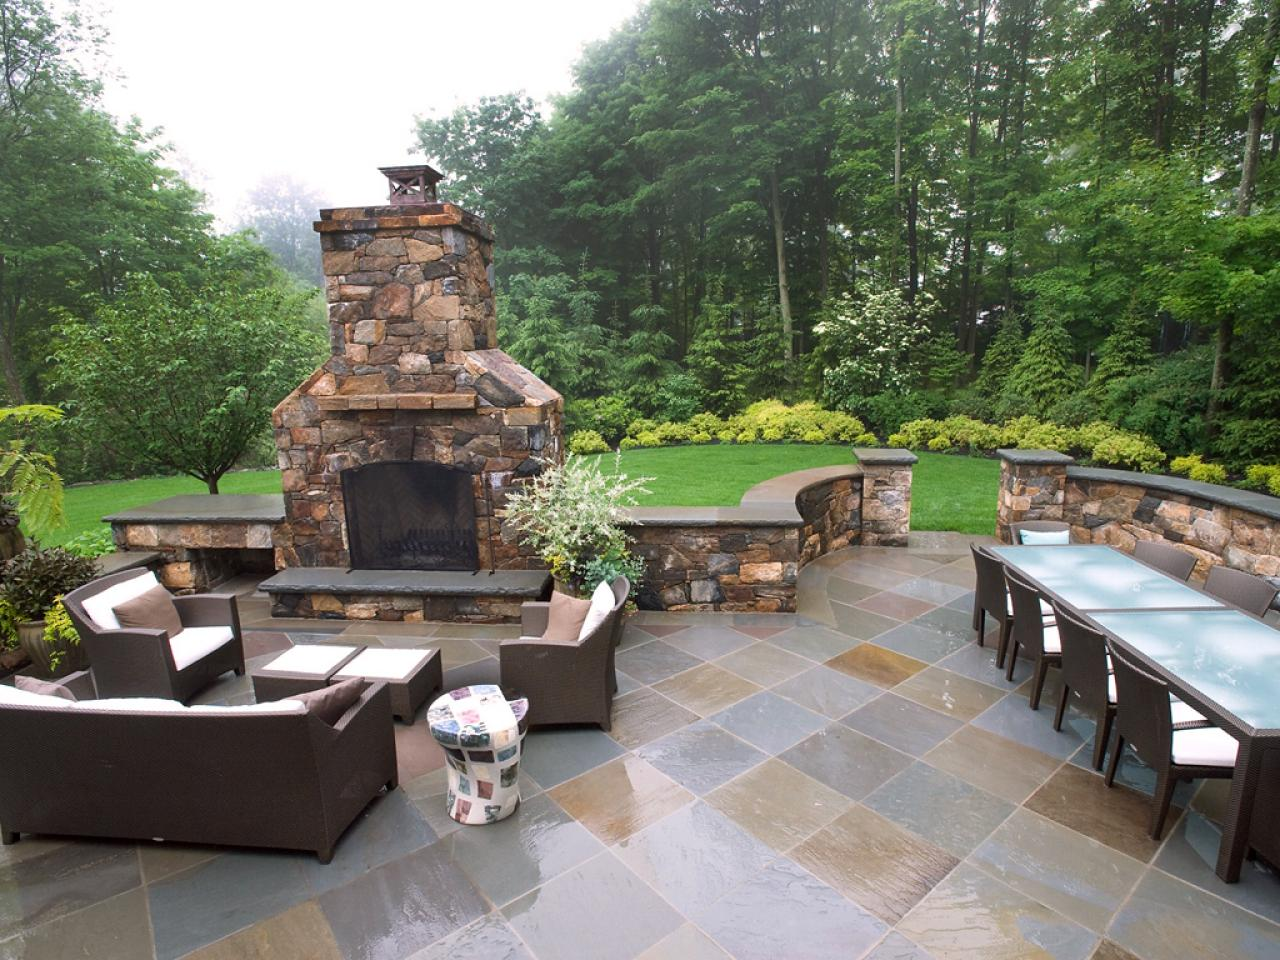 Patio design-Lakeland FL Landscape Designs & Outdoor Living Areas-We offer Landscape Design, Outdoor Patios & Pergolas, Outdoor Living Spaces, Stonescapes, Residential & Commercial Landscaping, Irrigation Installation & Repairs, Drainage Systems, Landscape Lighting, Outdoor Living Spaces, Tree Service, Lawn Service, and more.